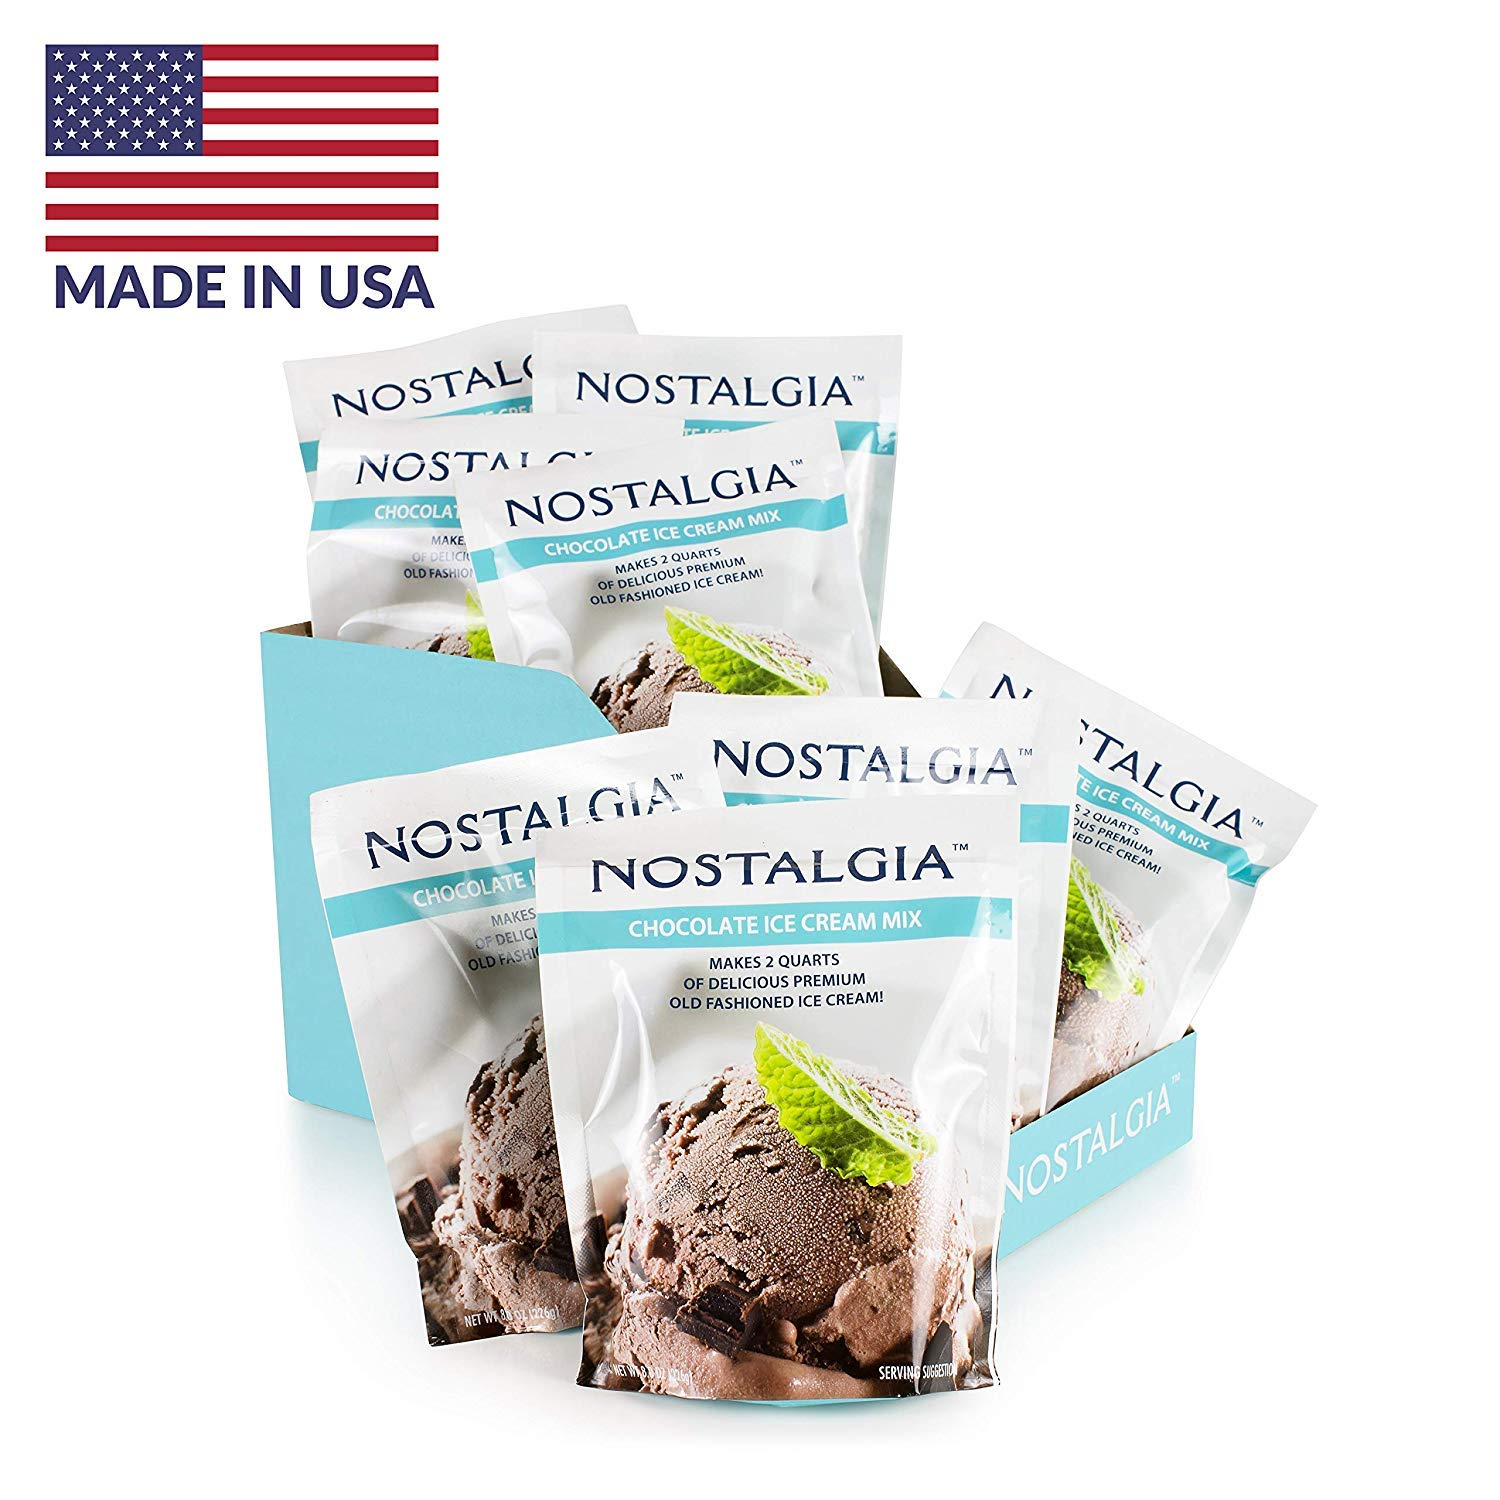 Nostalgia ICP825CHOC8PK Premium Chocolate Ice Cream Mix, 8 (8-Ounce) Packs, Makes 16 Quarts Total